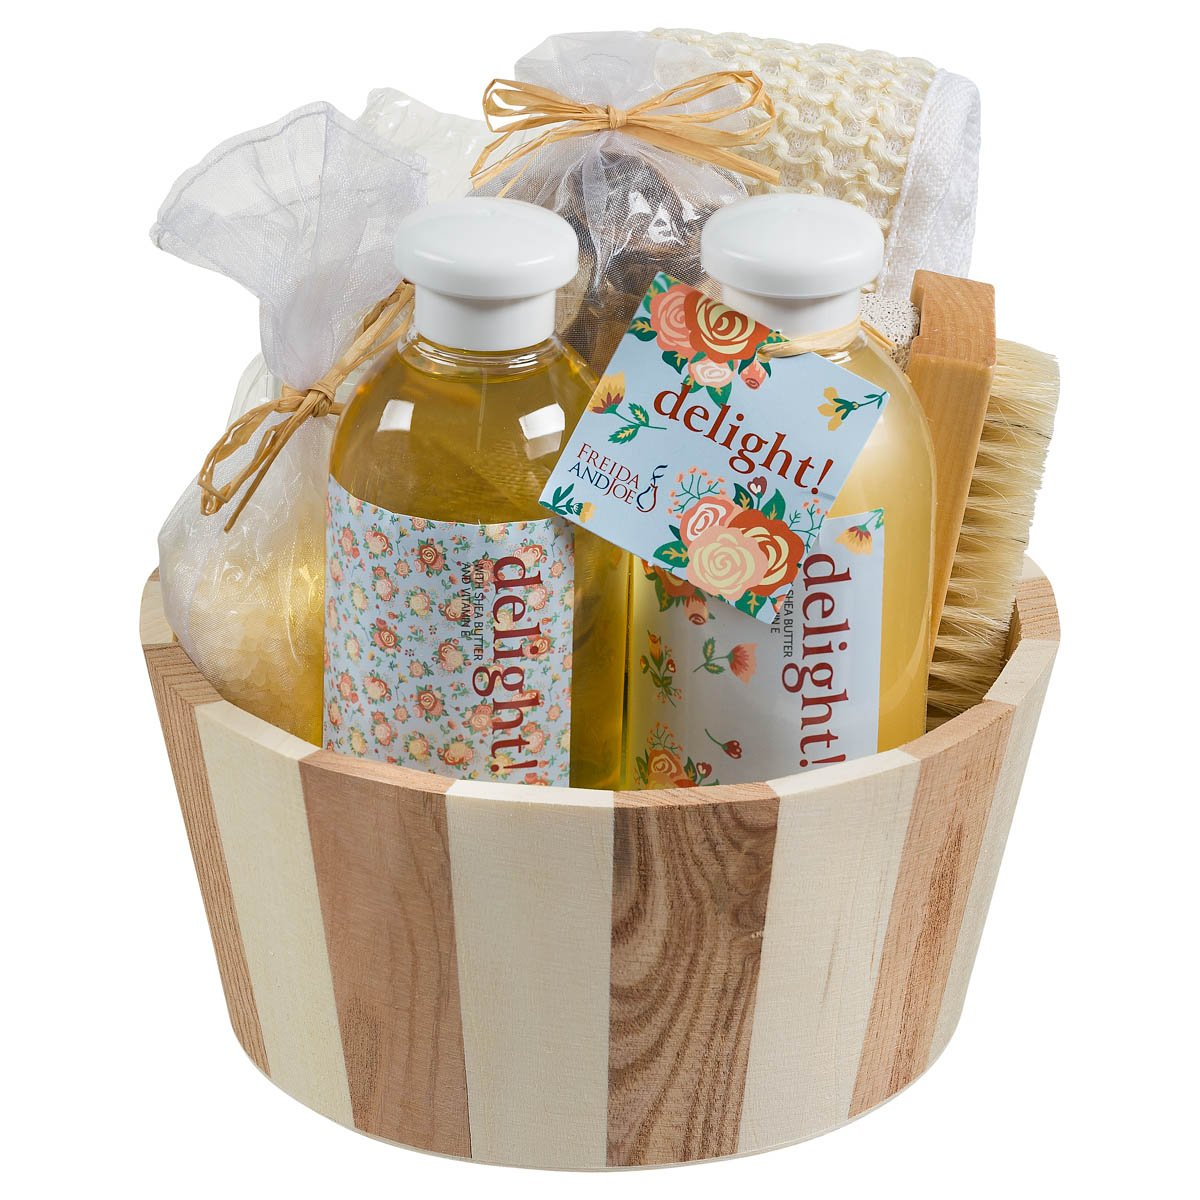 Bath, Body, and Spa Gift Set Basket with Reflexology Kit for Women, in Floral Delight Fragrance, Complete Relaxation and Skincare Essentials with Shea Butter and Vitamin E to Nourish Skin